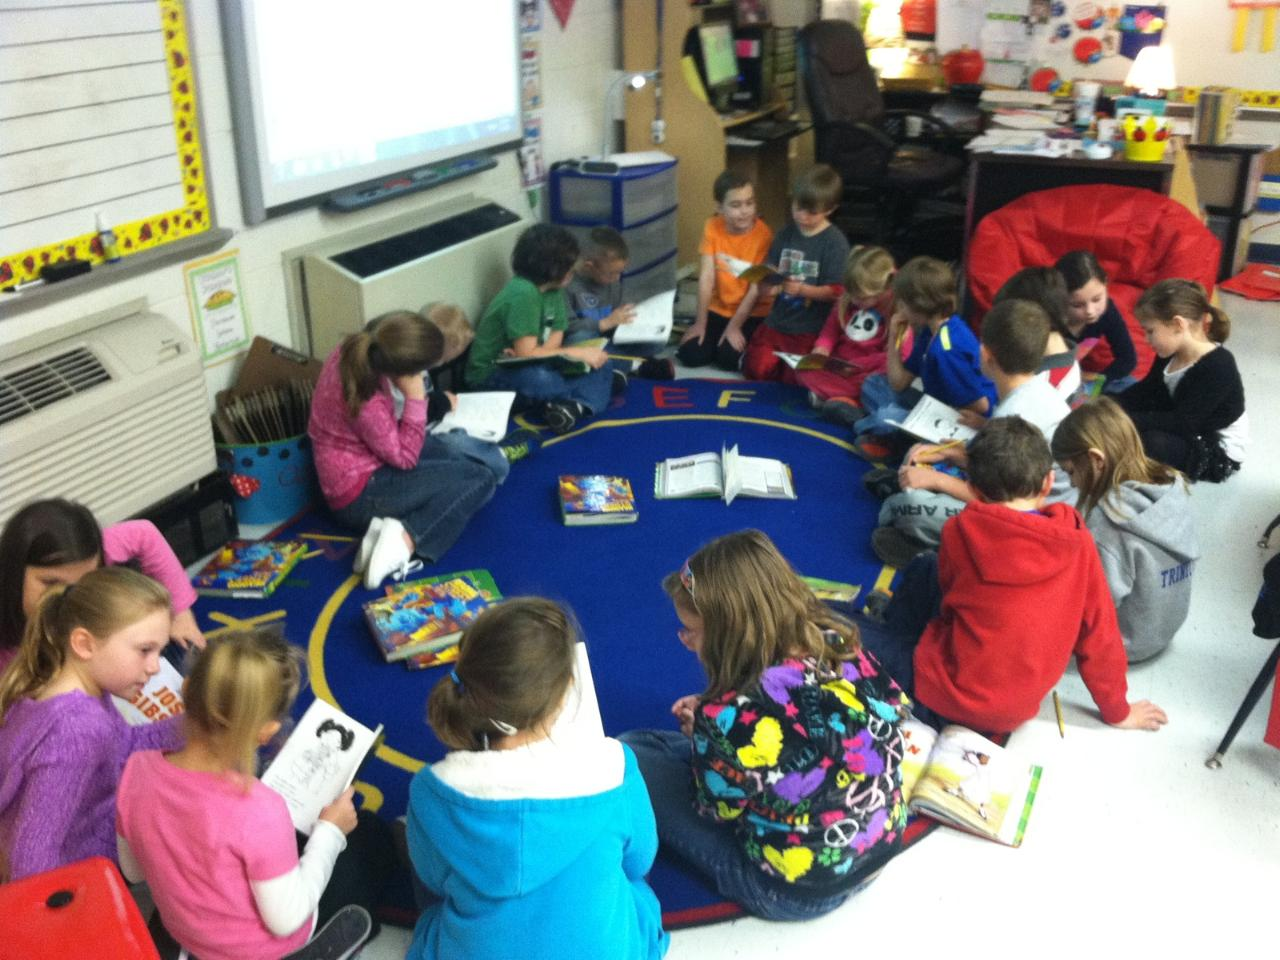 Worksheet Kindergarten Readers mrs lesas computer lab kindergarten readers we know how important reading is and these pictures show attentive second graders listening to the readers